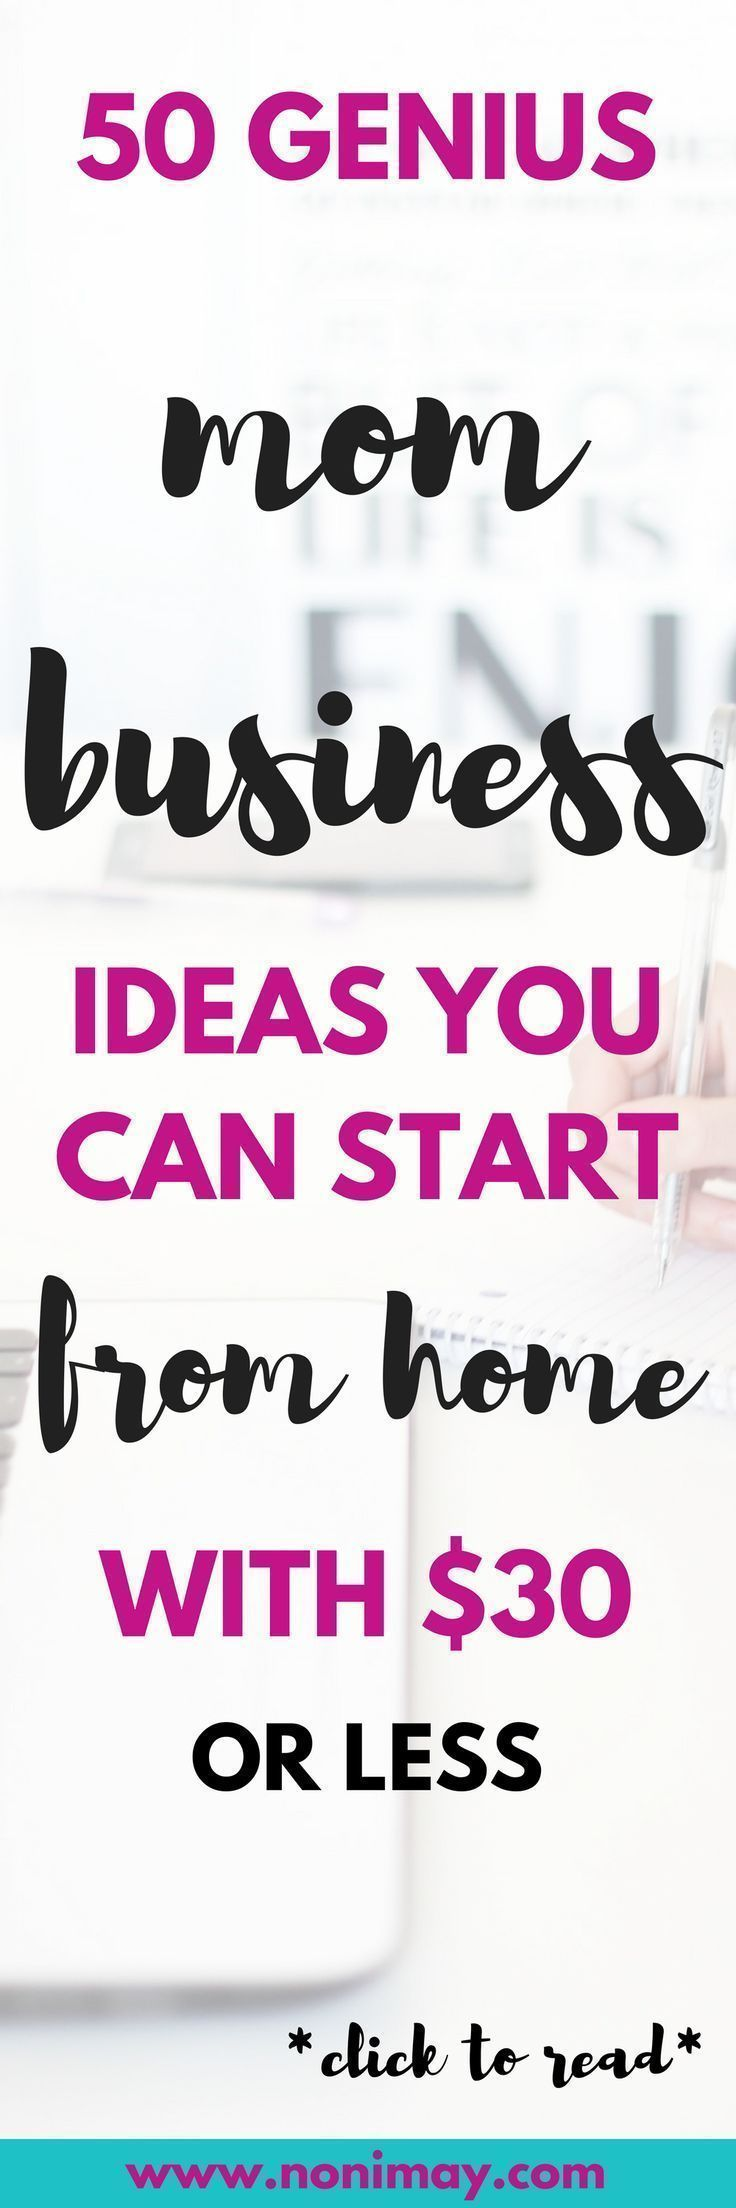 332 best Work from home Job ideas! images on Pinterest